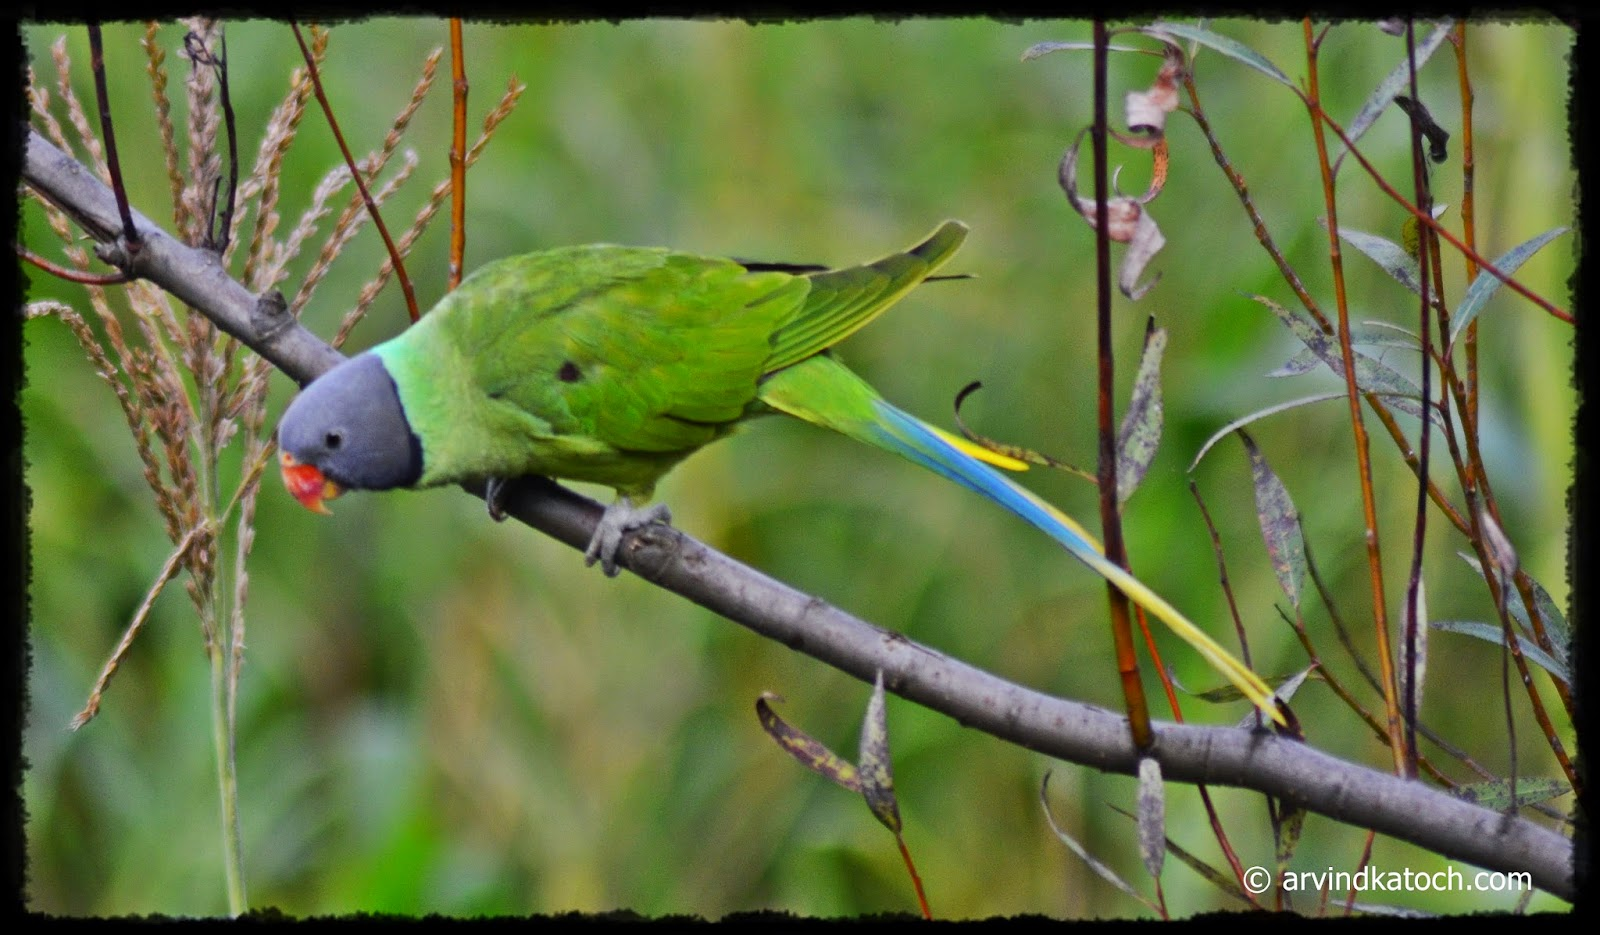 Slaty-headed Parakeet, Himalayan Parrot